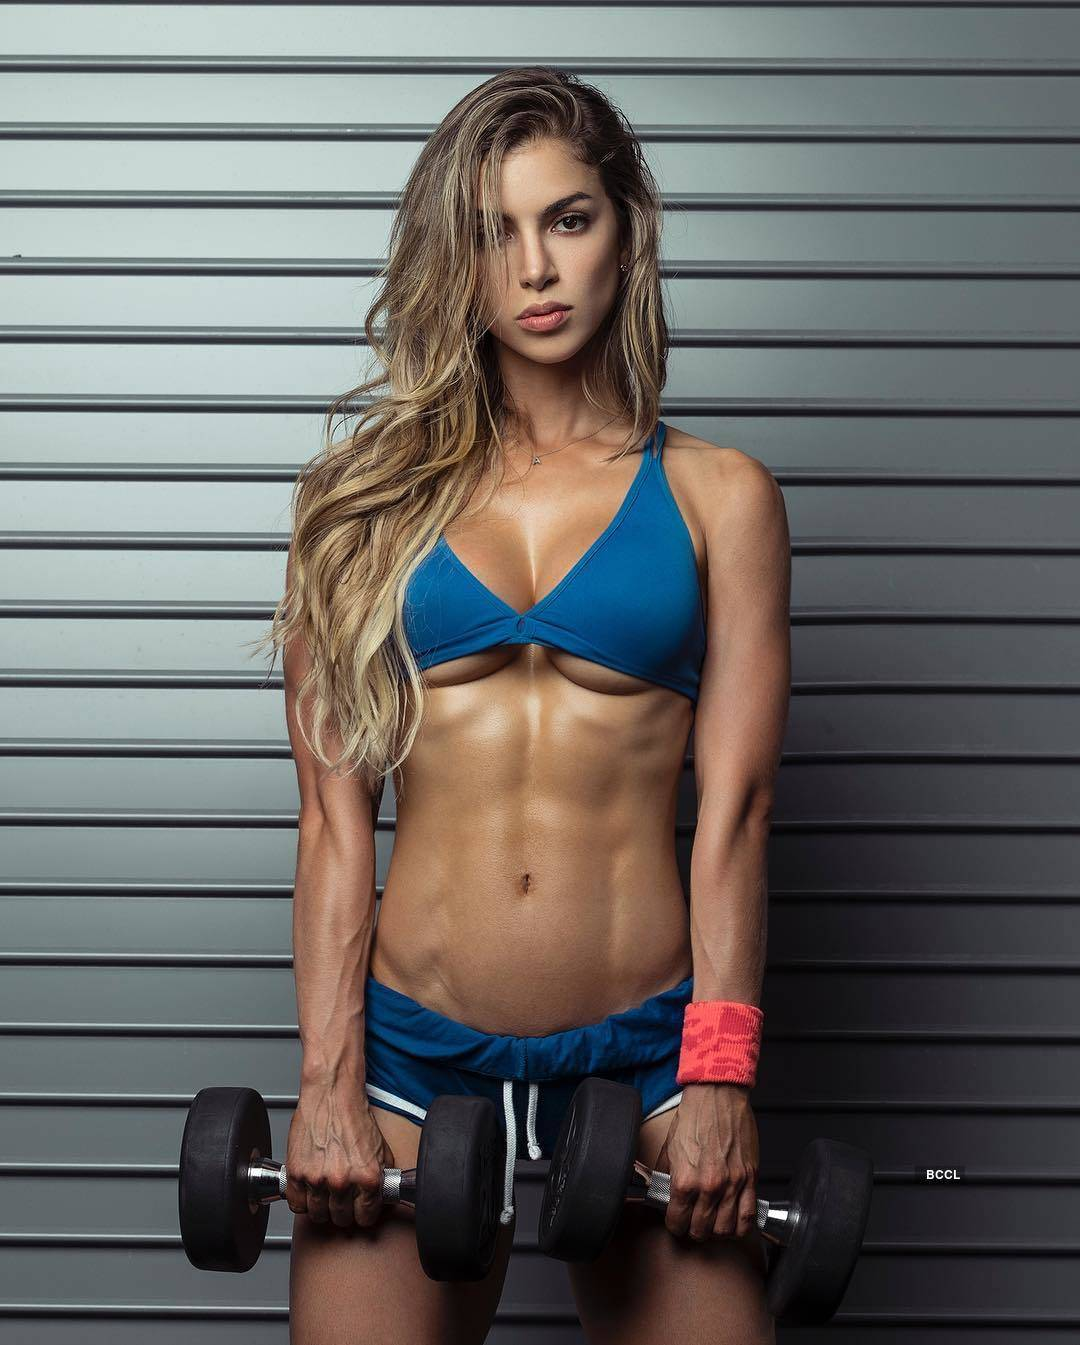 Colombian fitness model Anllela Sagra is an inspiration to get fit